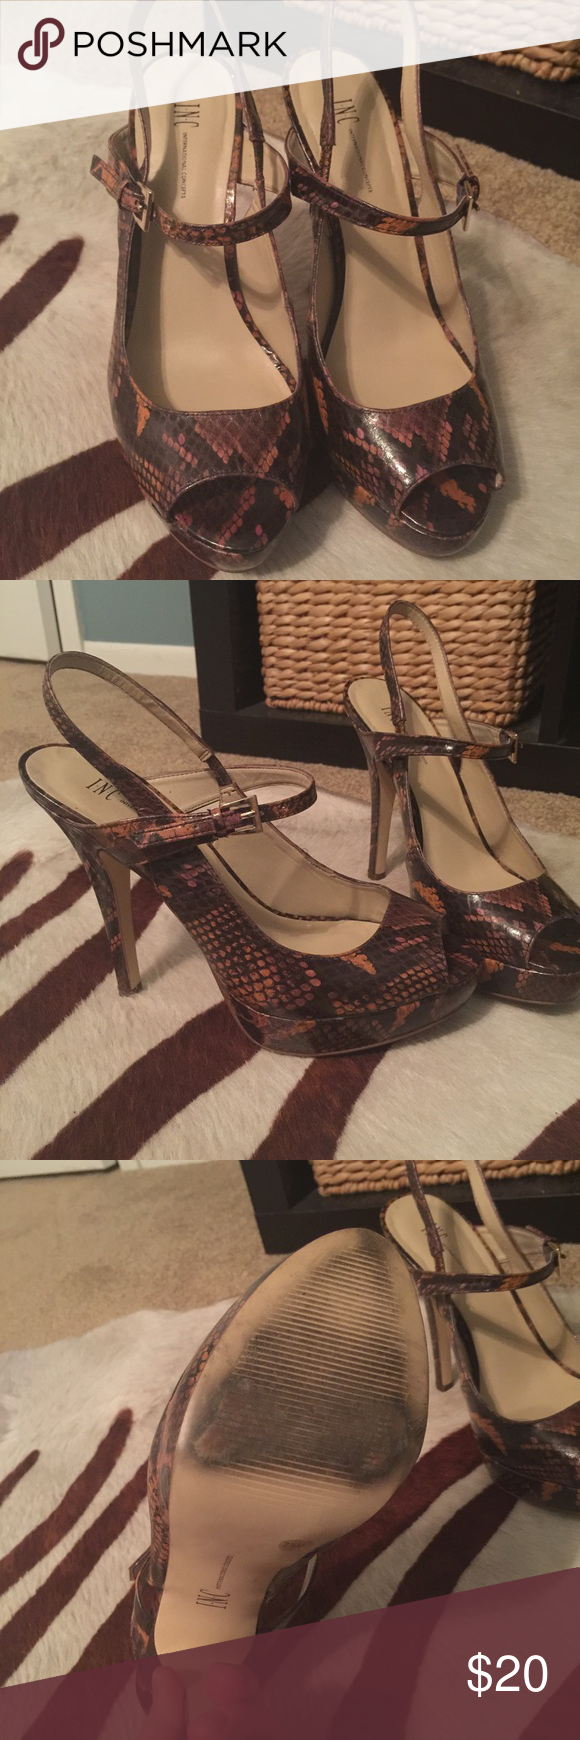 INC Snakeskin Slingback Platforms Peep toe platforms. Sexy! Snakeskin multi-color- Brown, orange and pink. Perfect condition. INC International Concepts Shoes Platforms